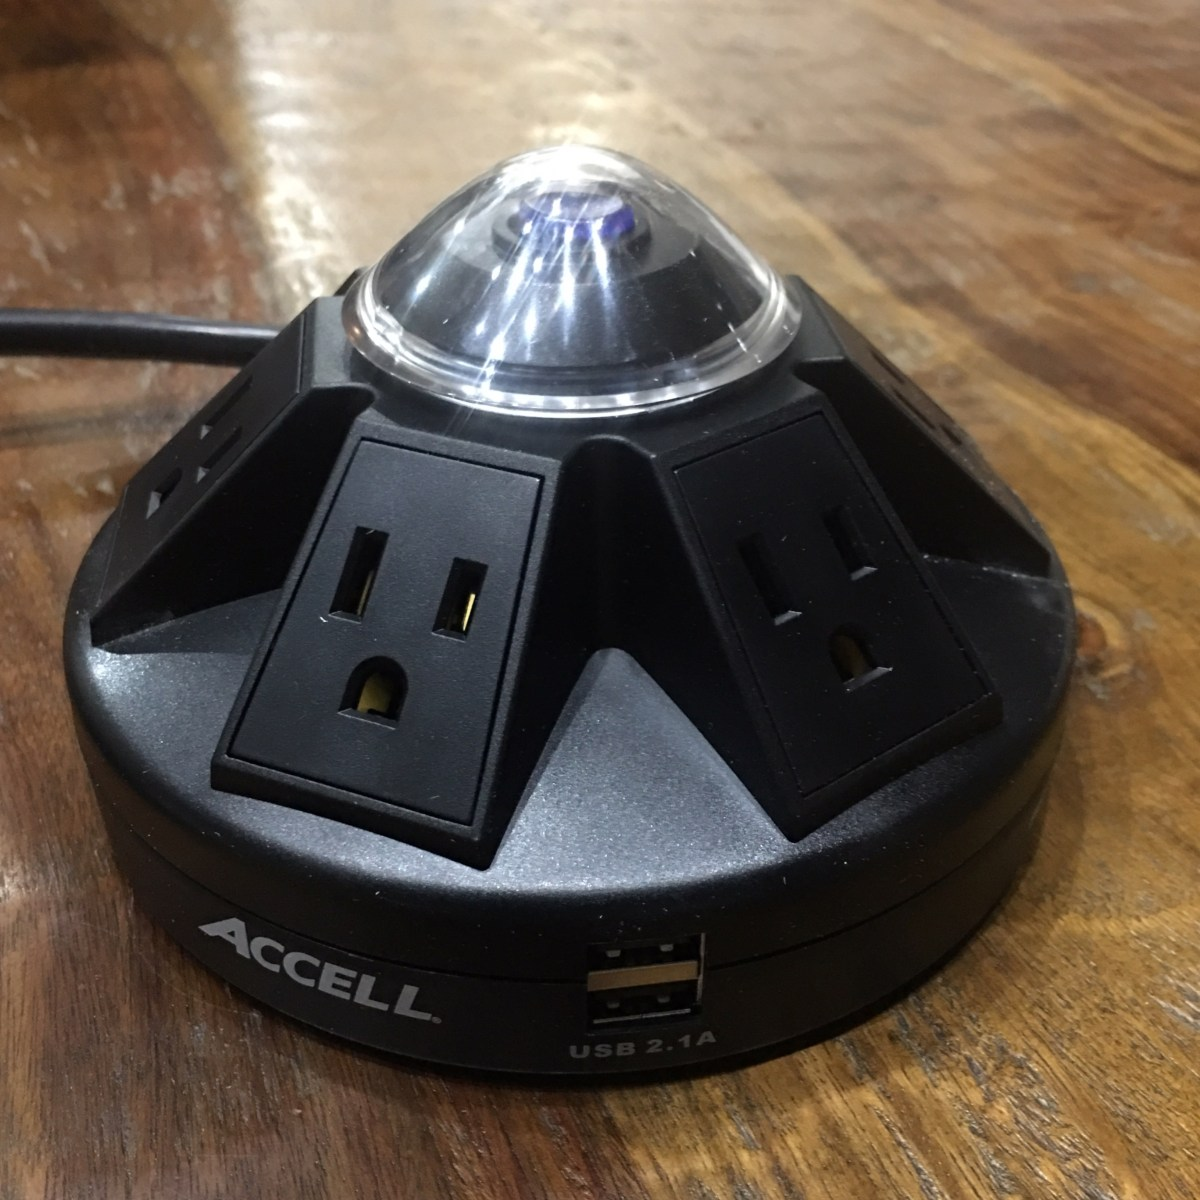 Accell Powramid 6 outlet 2 USB surge protector